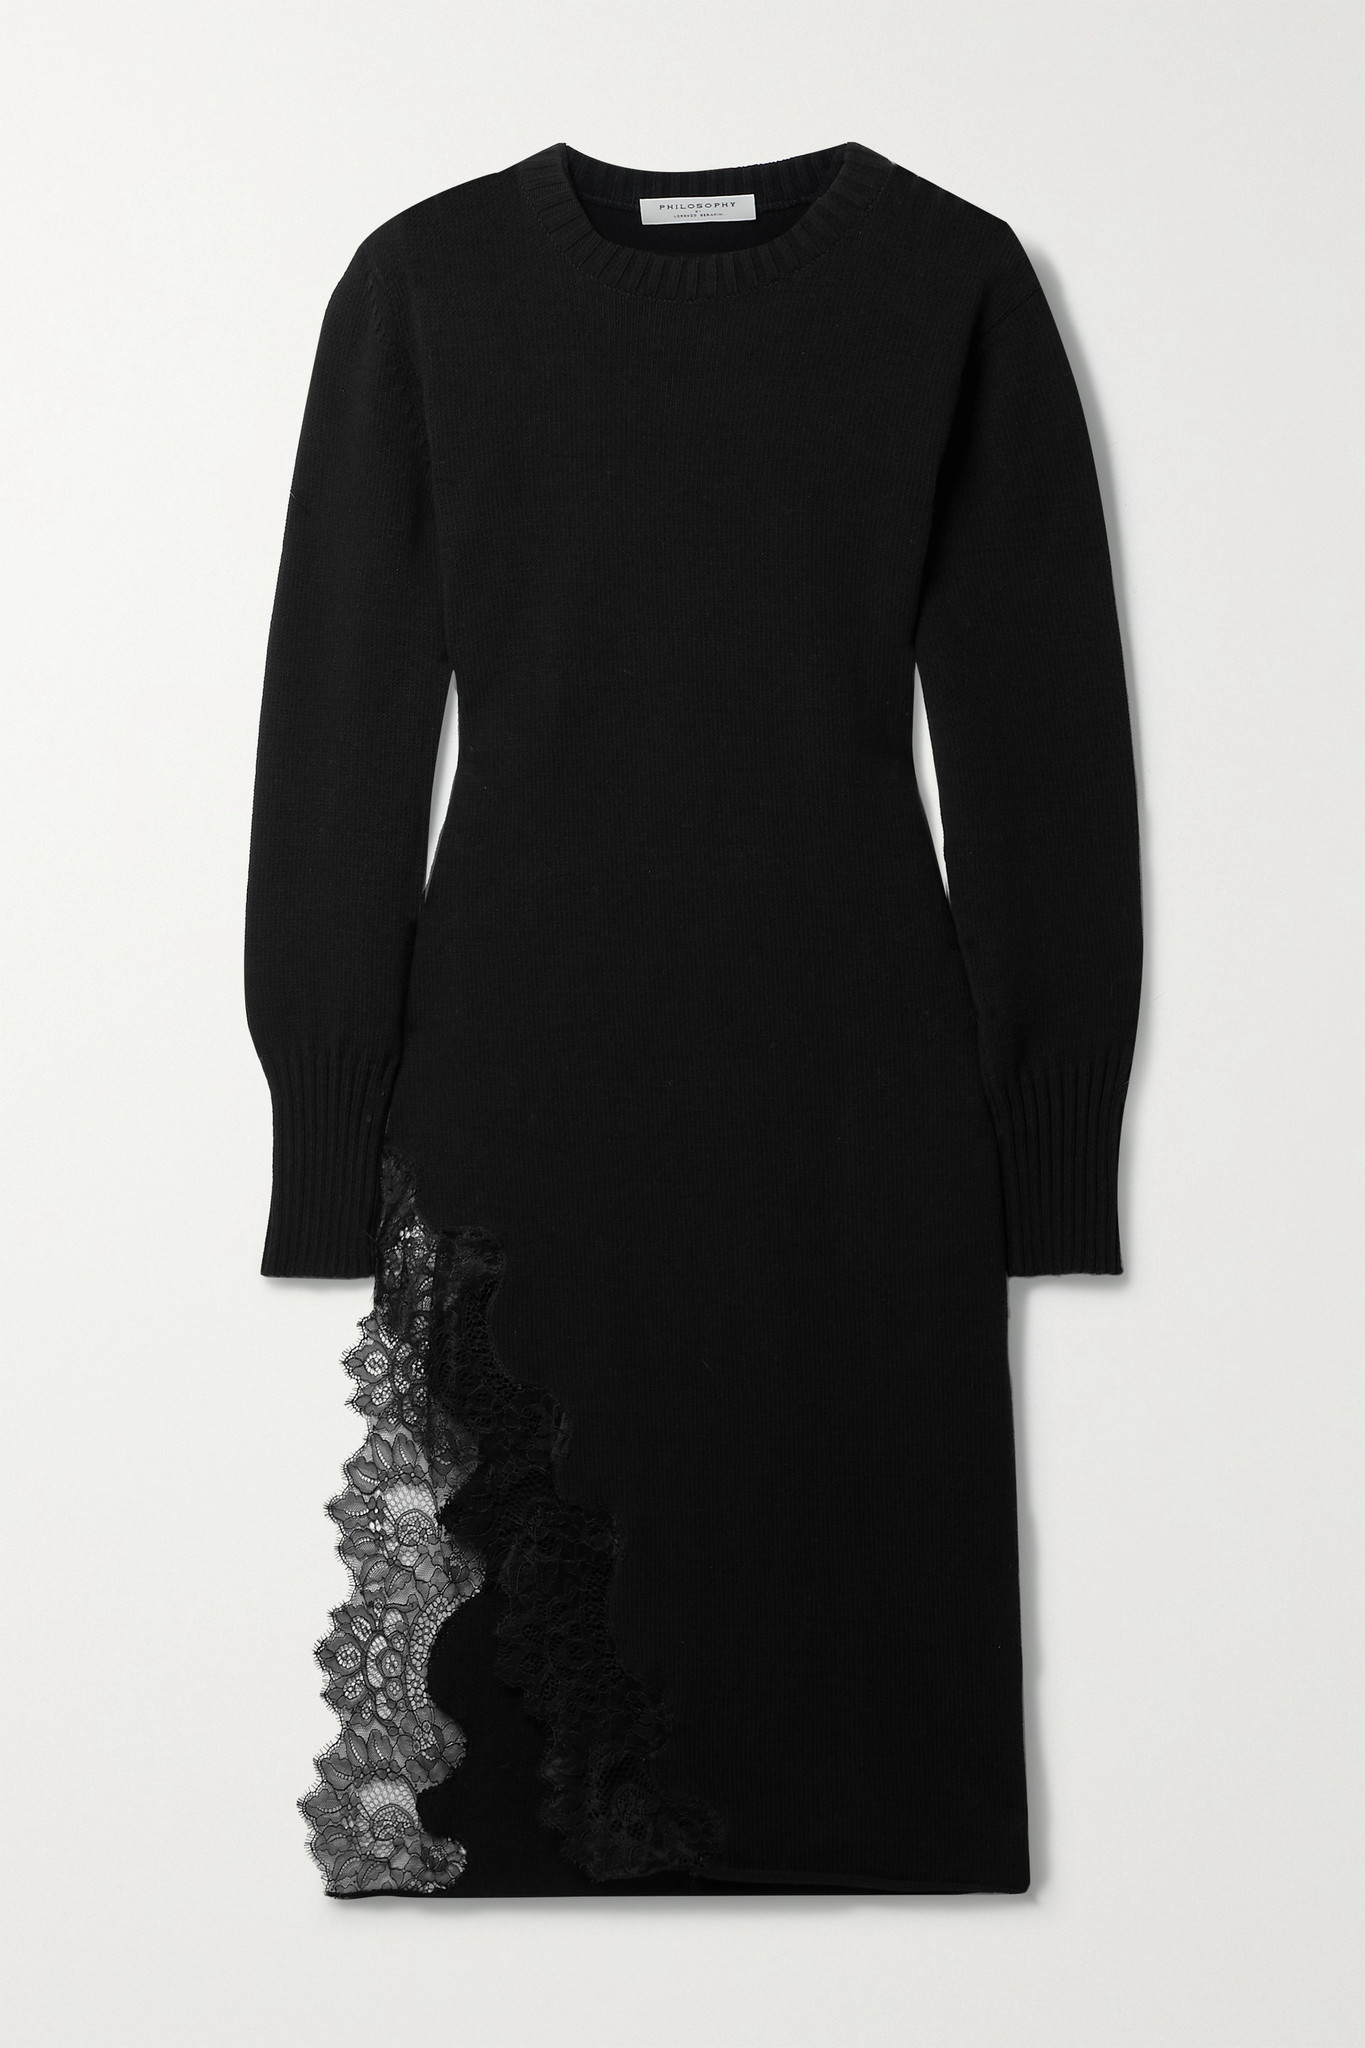 PHILOSOPHY DI LORENZO SERAFINI - Lace-trimmed Cotton-blend Midi Dress - Black - IT42